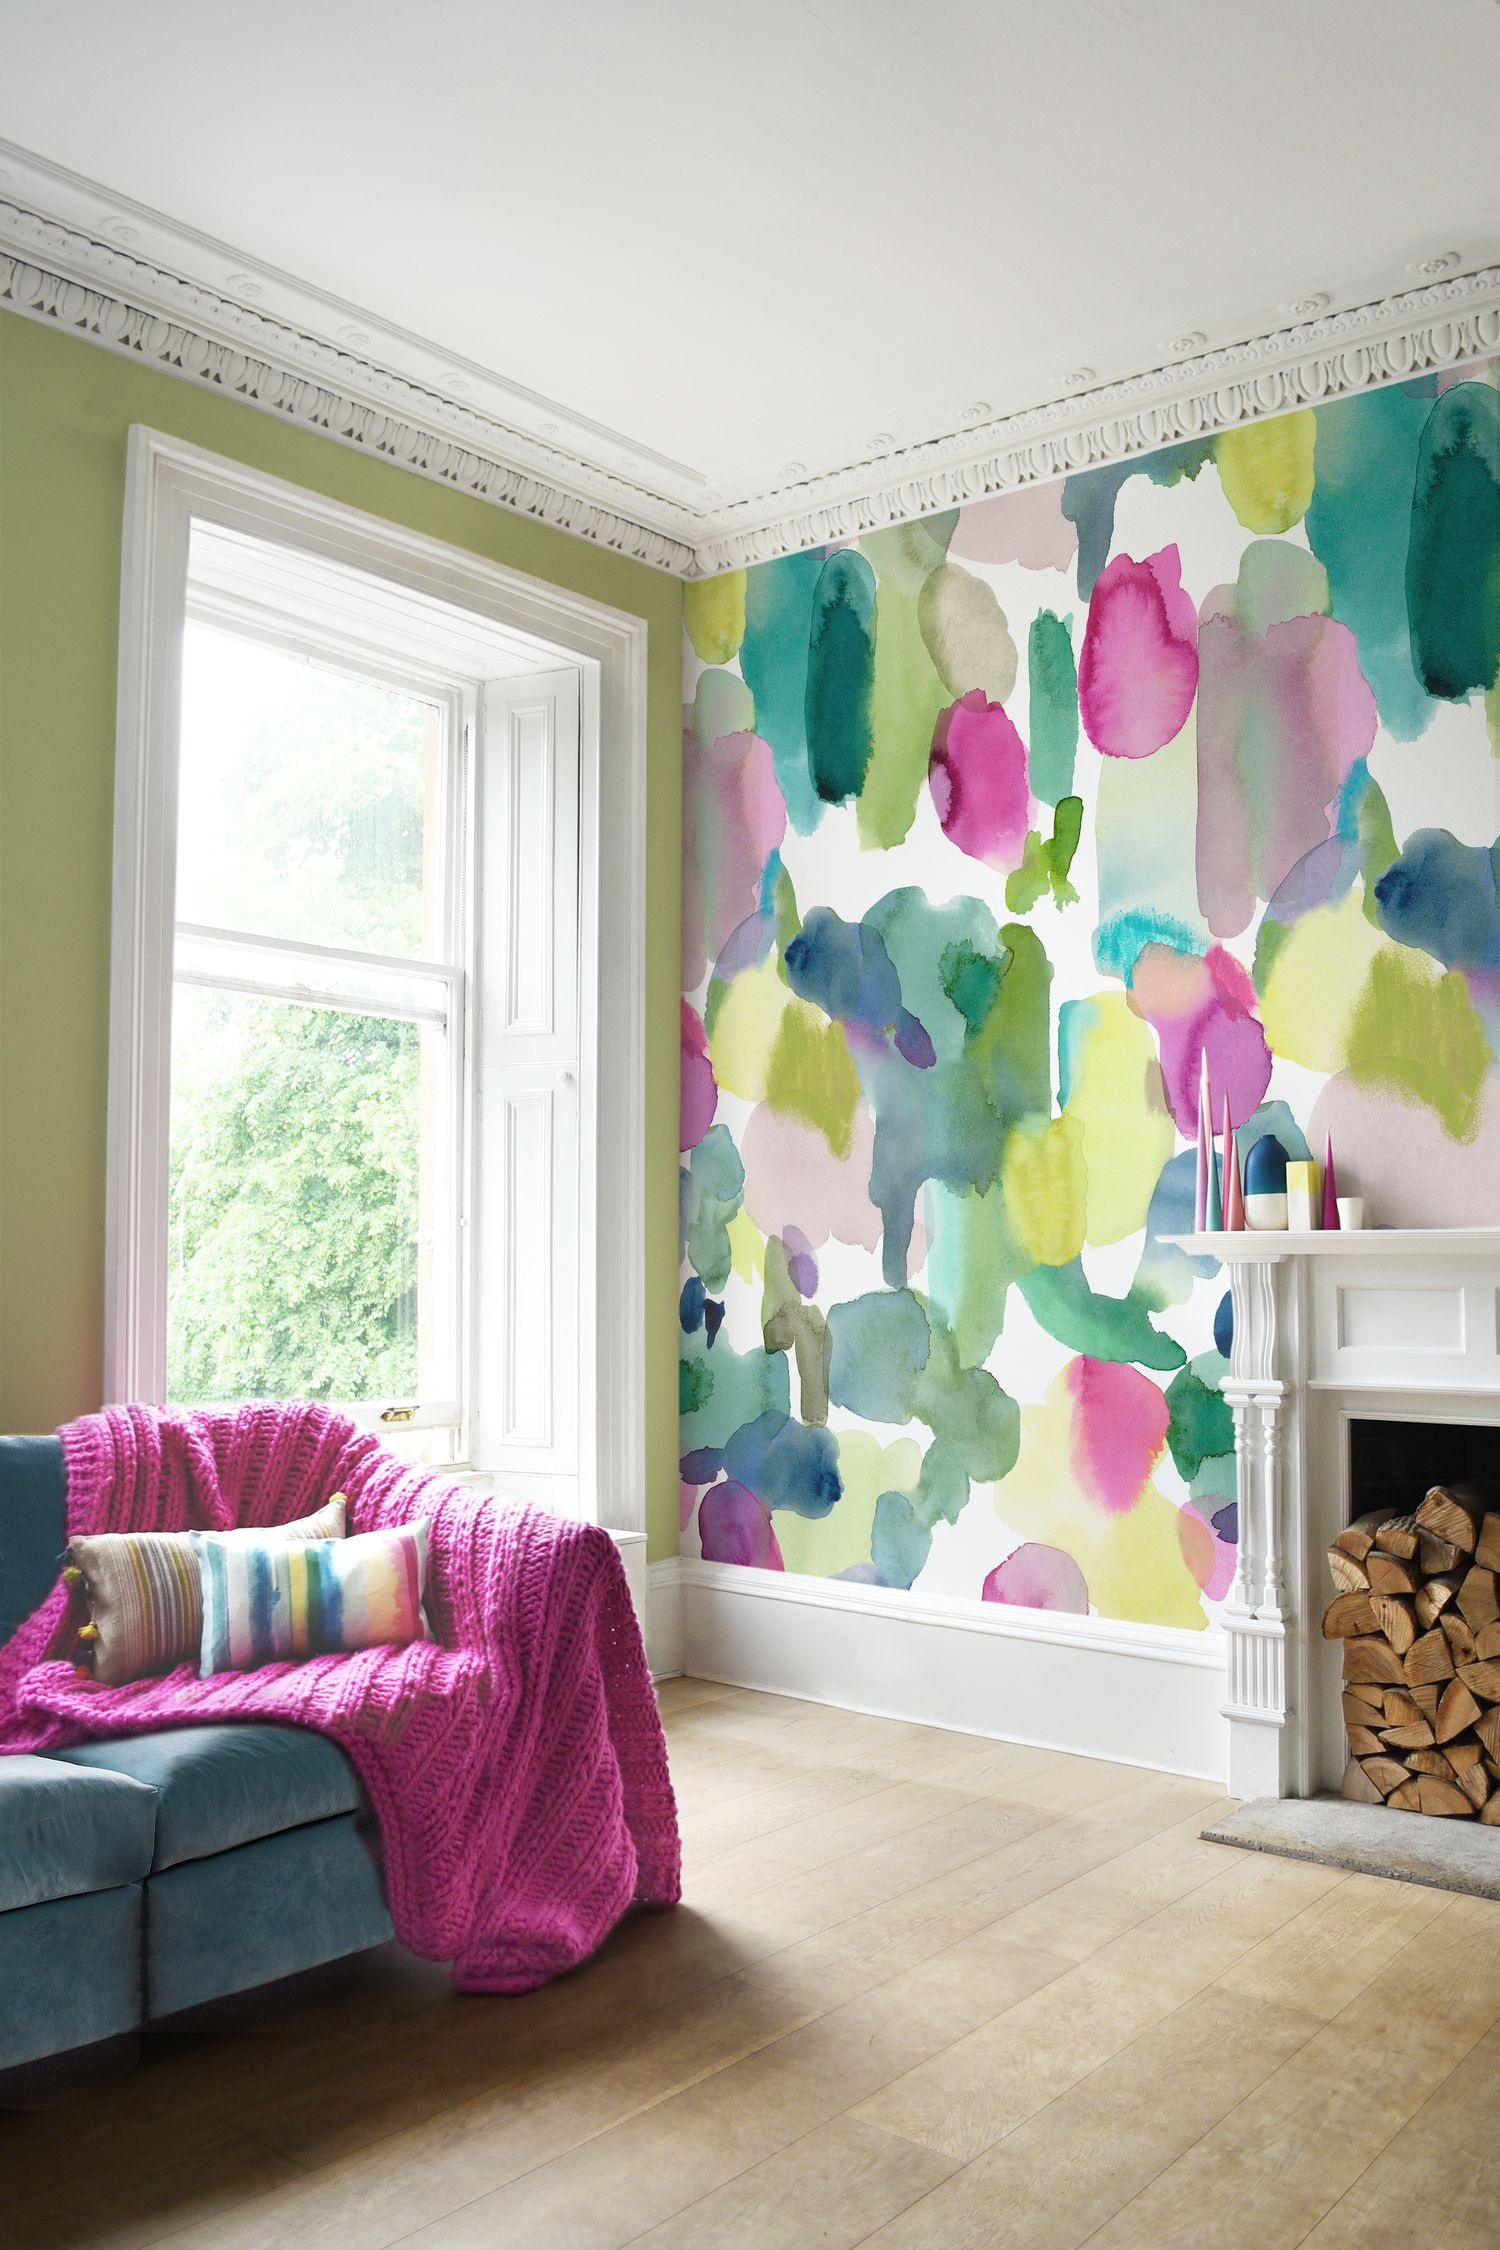 25 Awesome Living Room Design Ideas On A Budget: 25 Awesome Rooms With Colorful Wallpaper